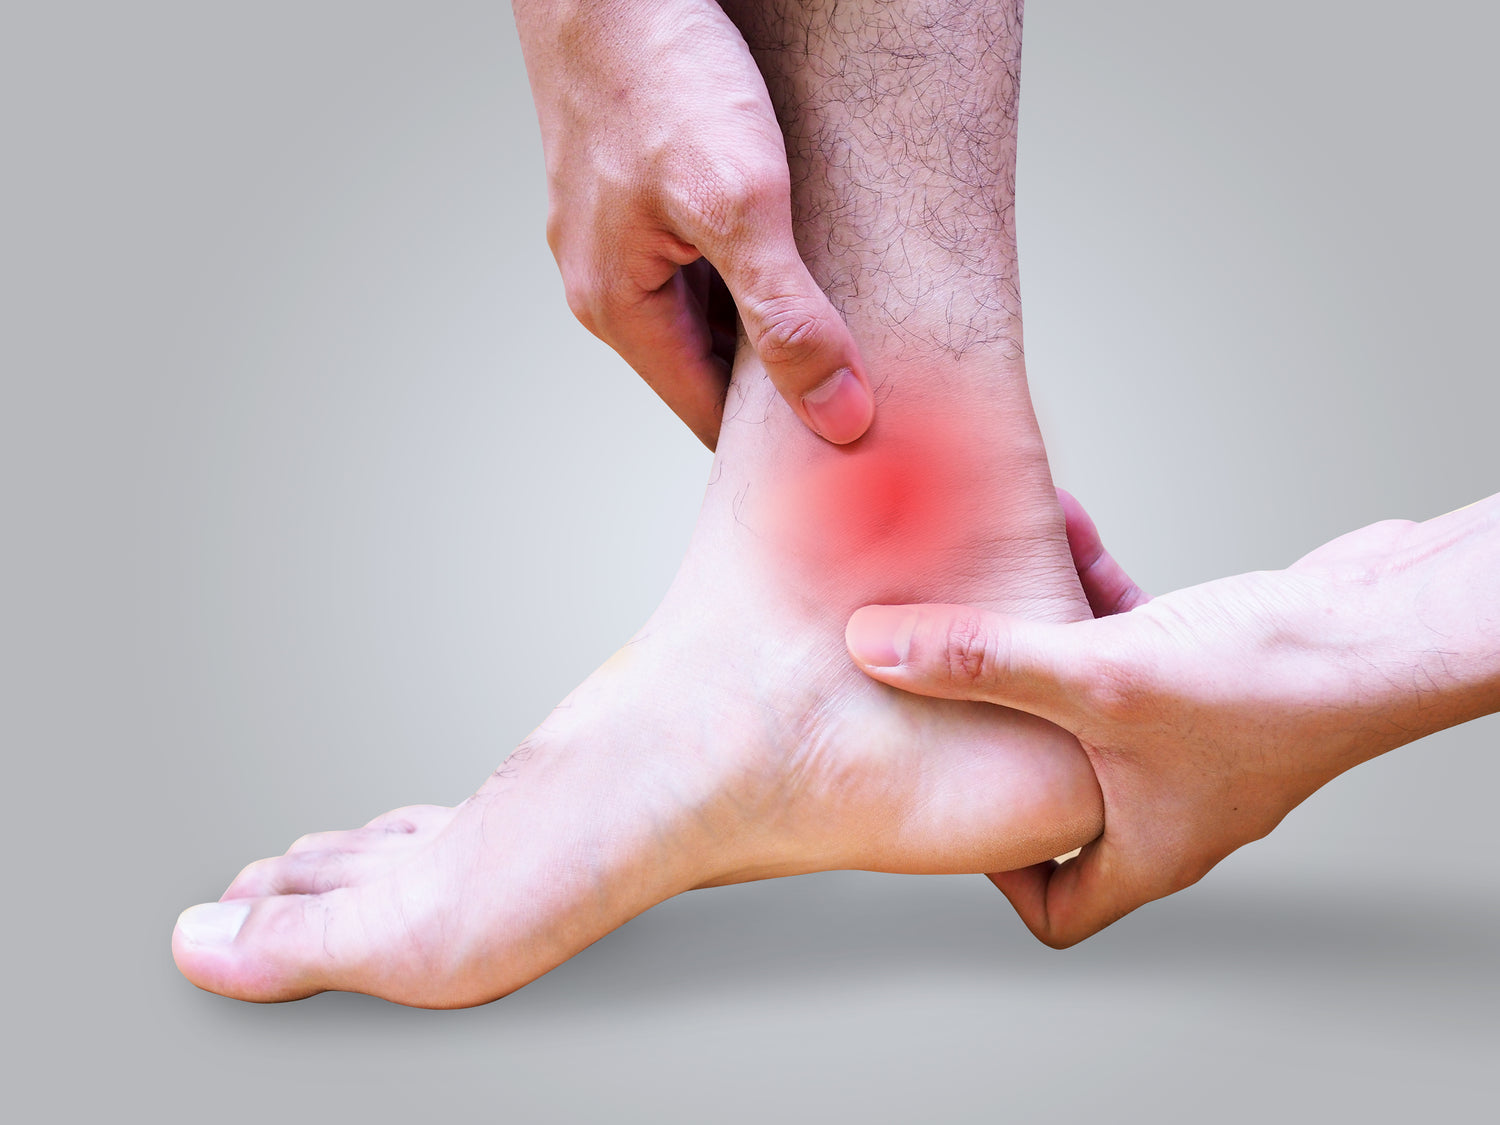 How To Heal A Sprained Ankle